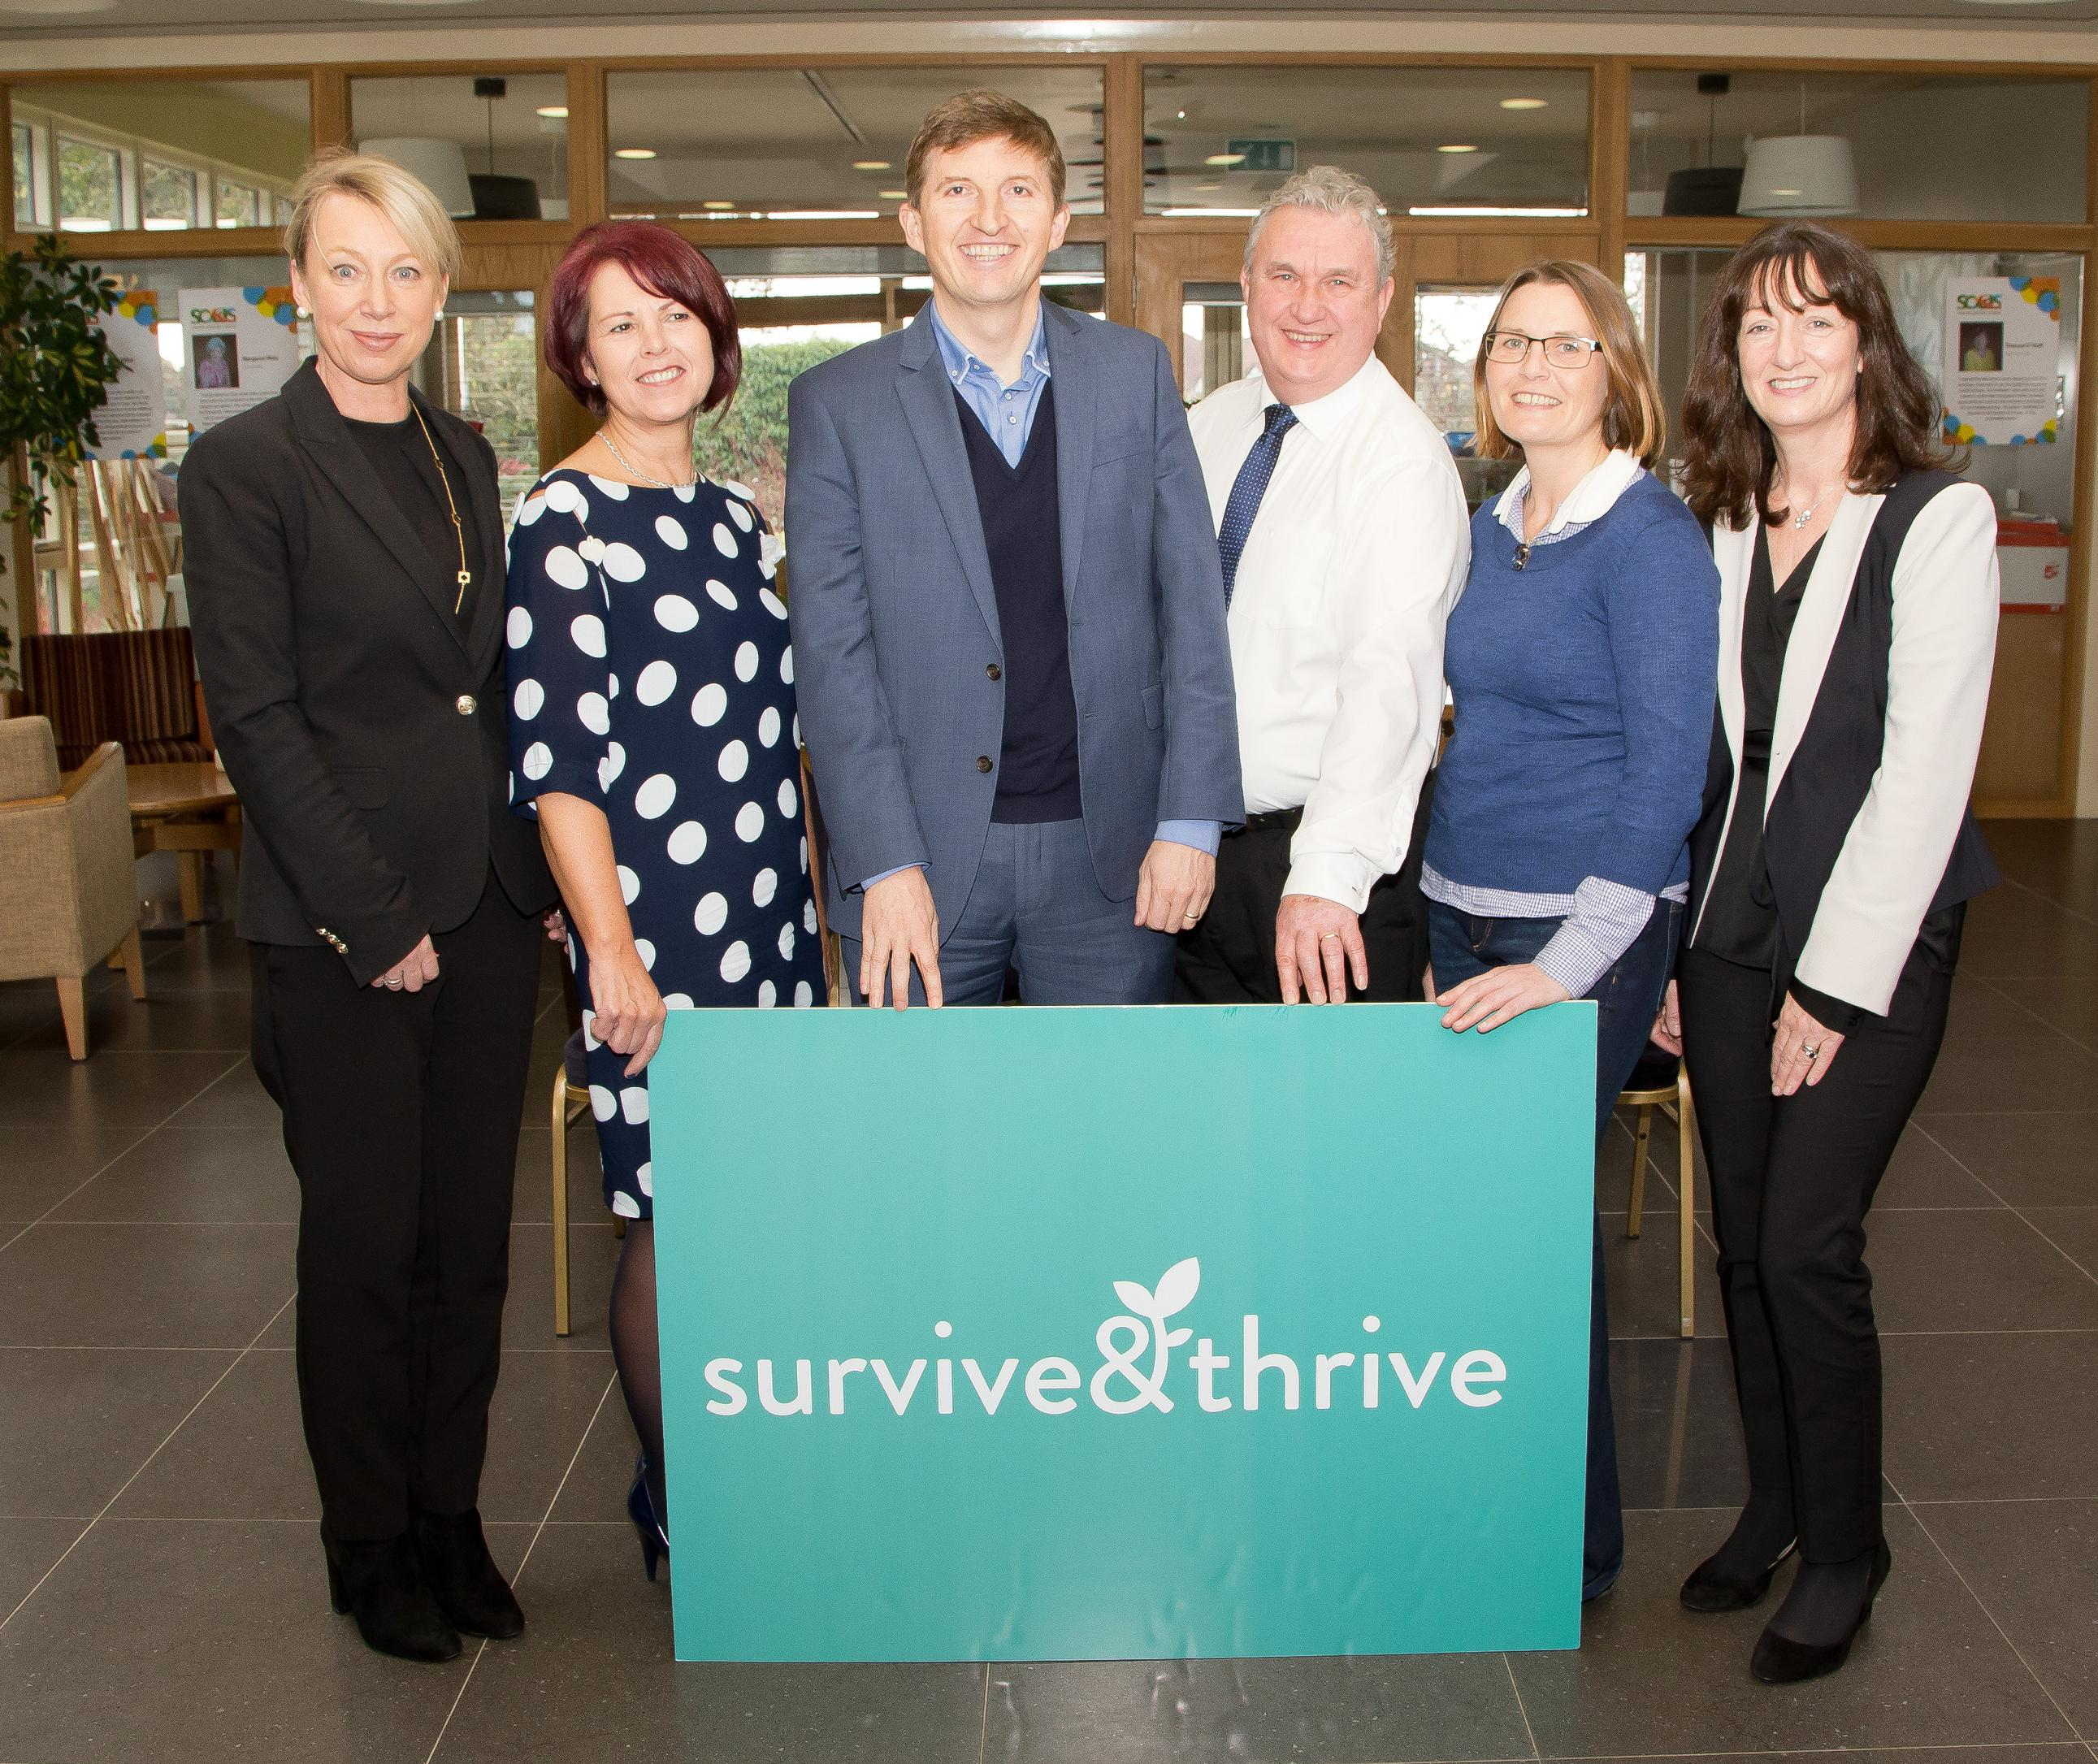 attending were Suzanne Ennis, Astellas Helen Forristal, Marie Keating Foundation, Dr. Mark Rowe, guest speaker, Tom Mullane, course facilitator,Grainne Delaney, complimentary therapistand and Martina Dempsey, Aestellas.Photo: John Power